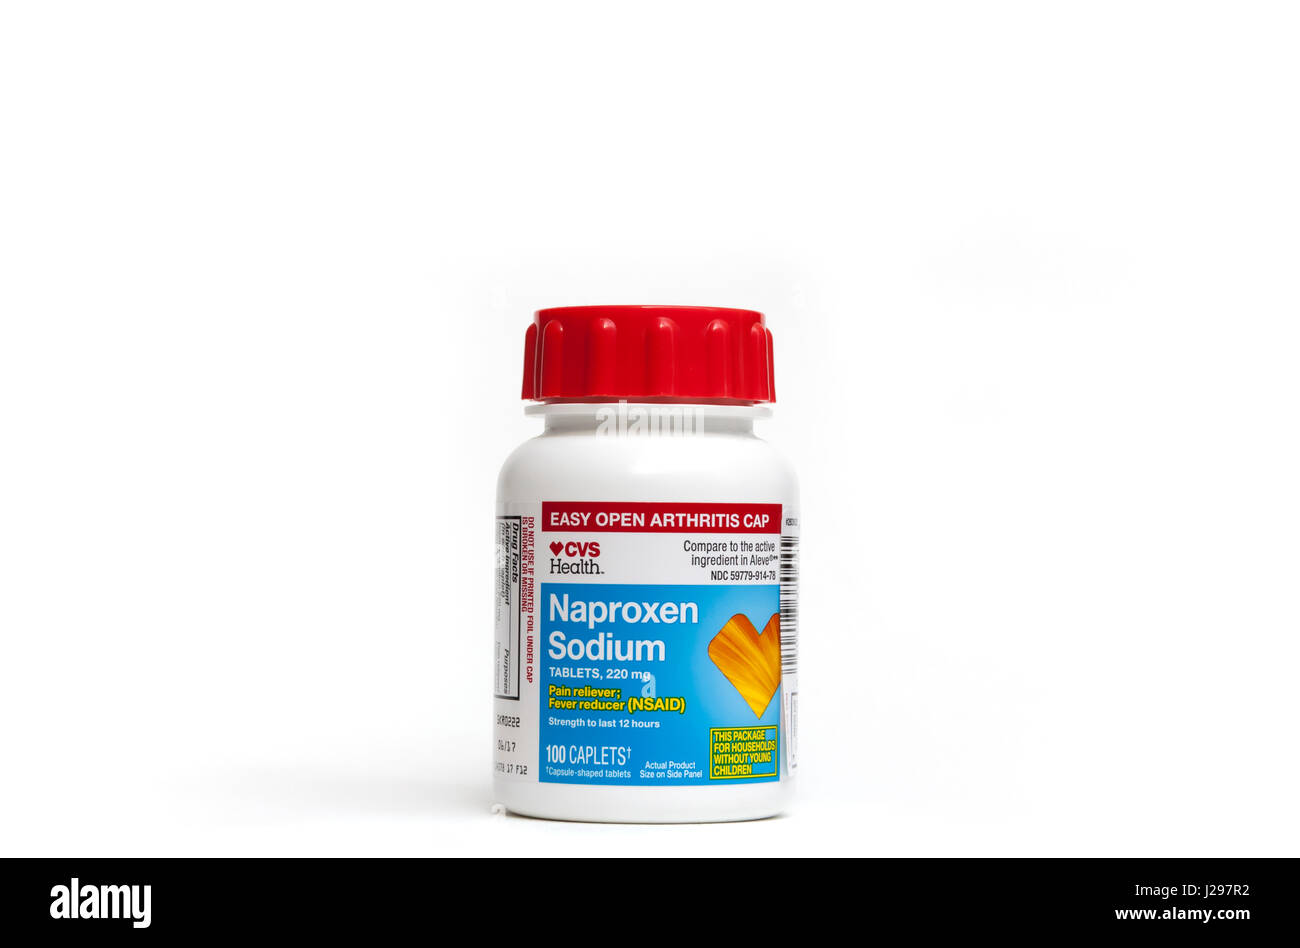 naproxen stock photos  u0026 naproxen stock images